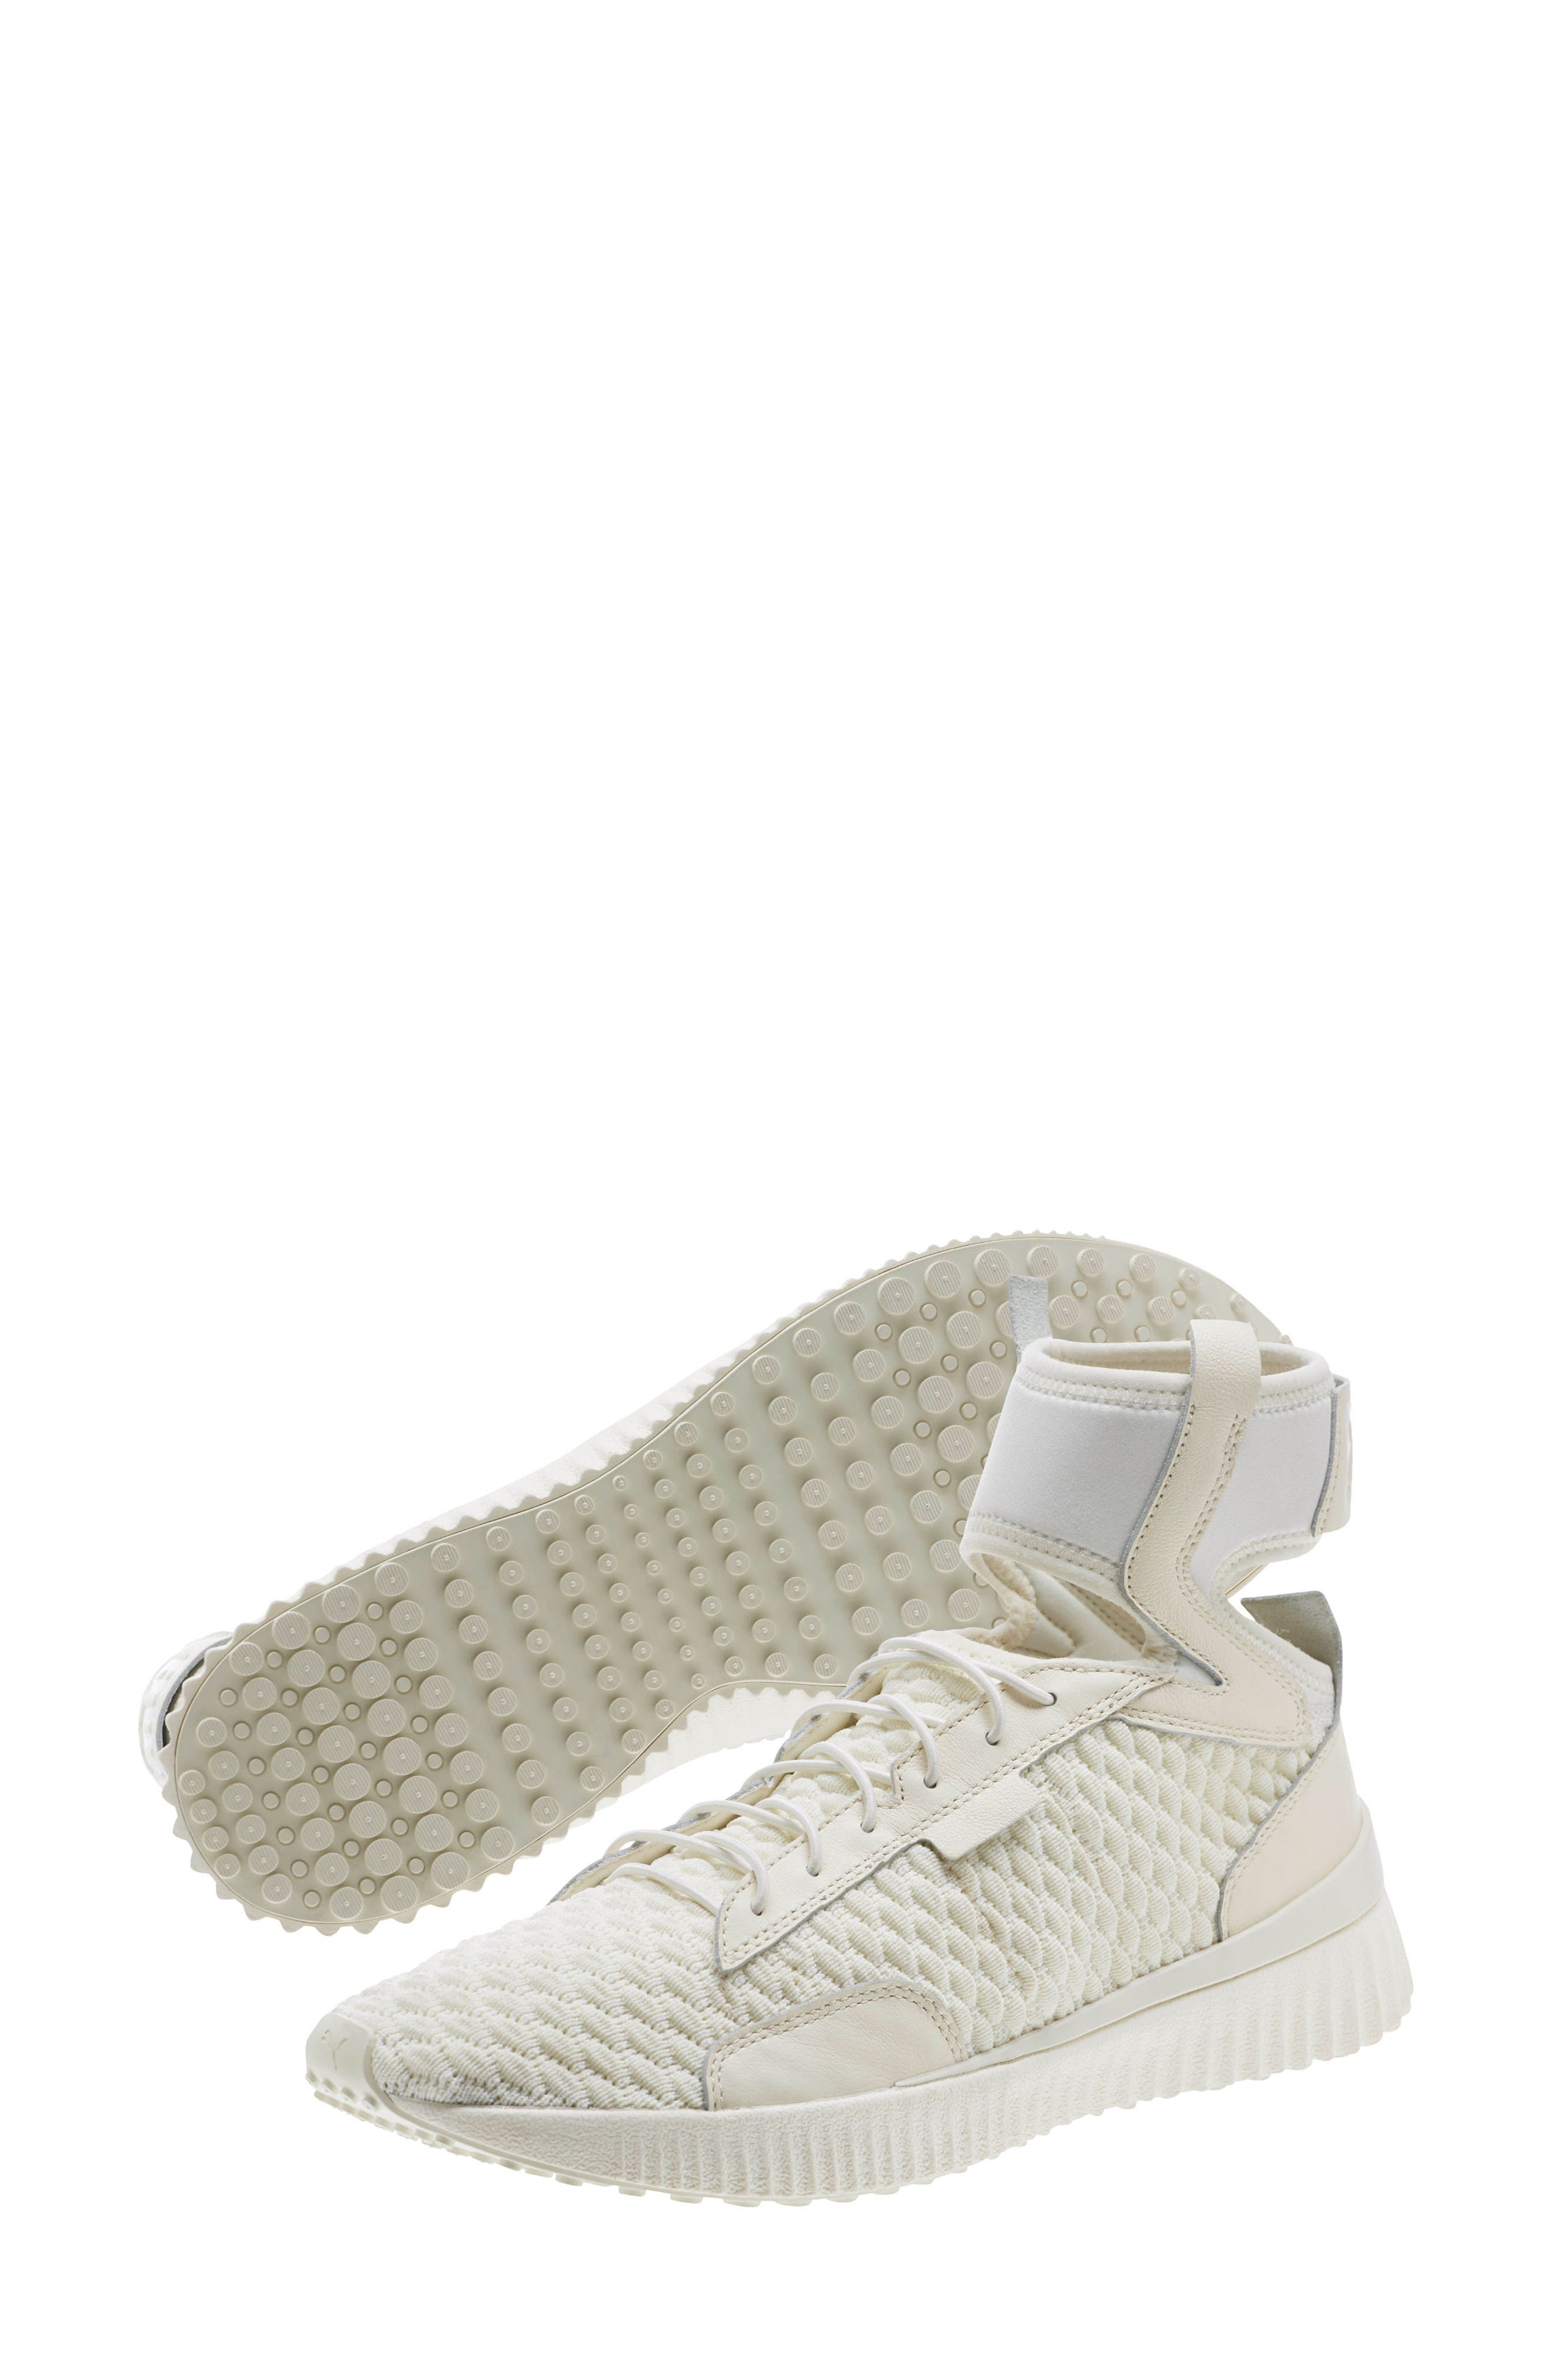 FENTY PUMA by Rihanna High Top Sneaker,                             Alternate thumbnail 7, color,                             Vanilla Ice/ Sterling Blue